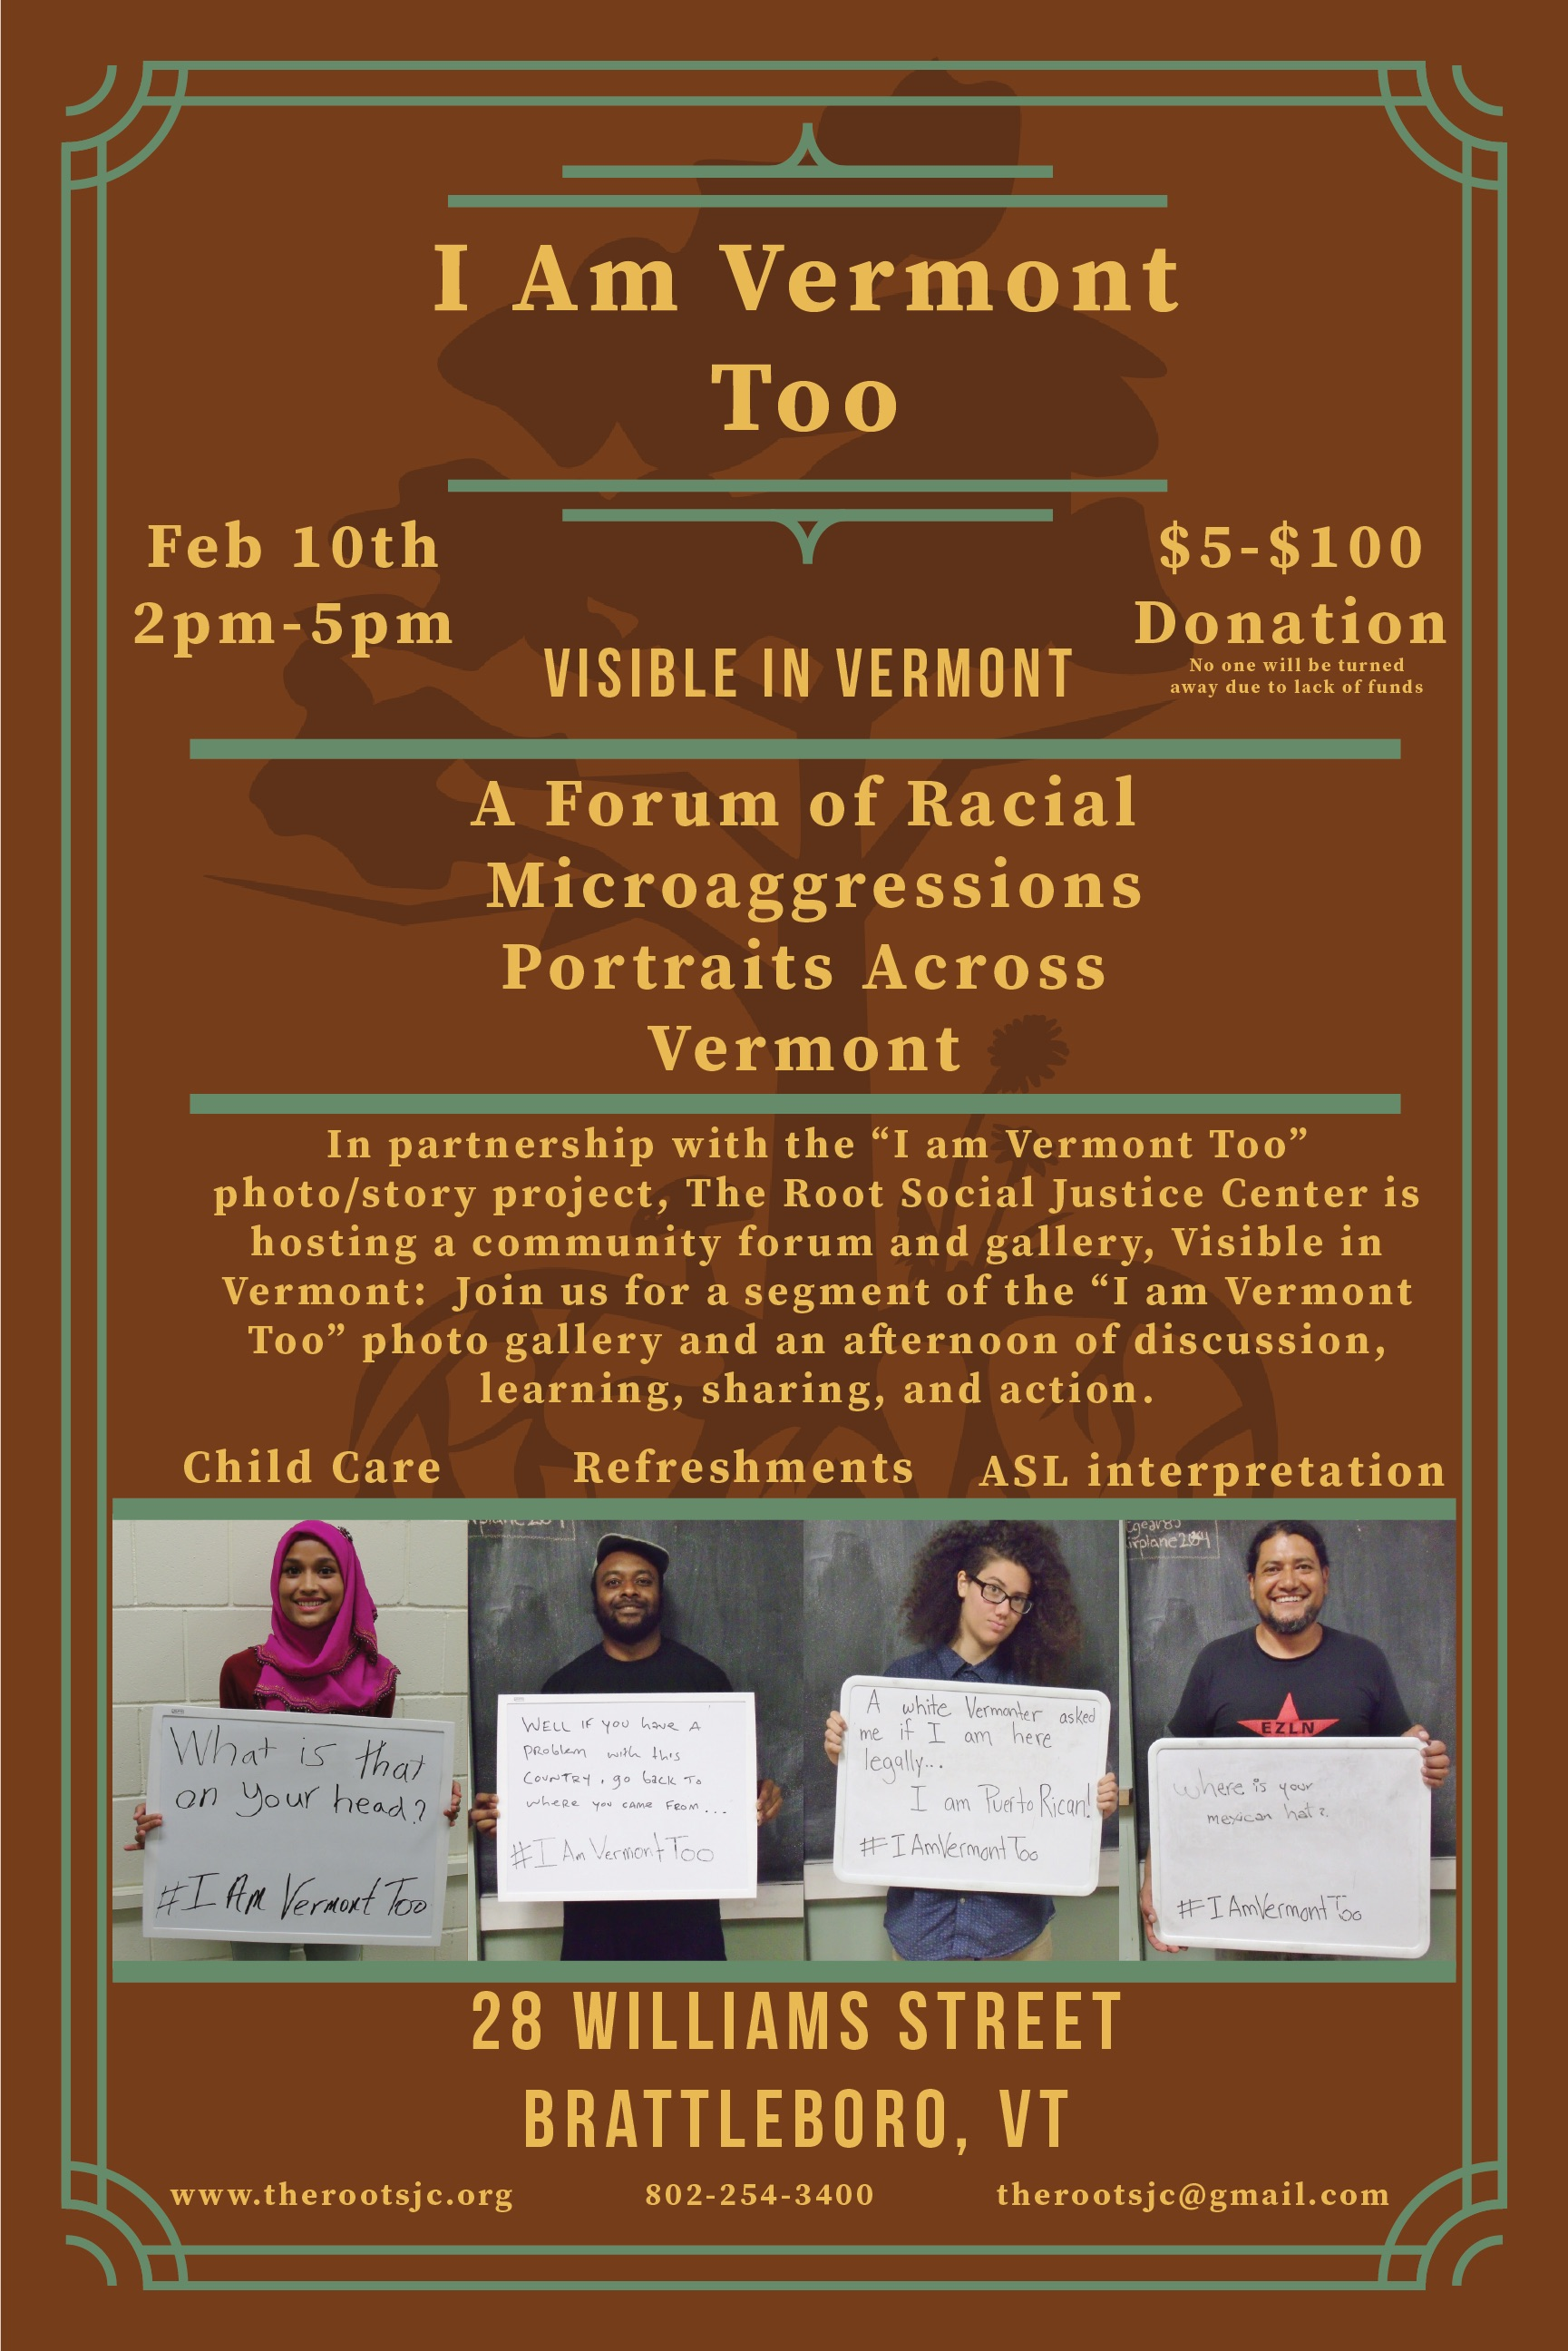 i am vermont too gallery and discussion informational poster